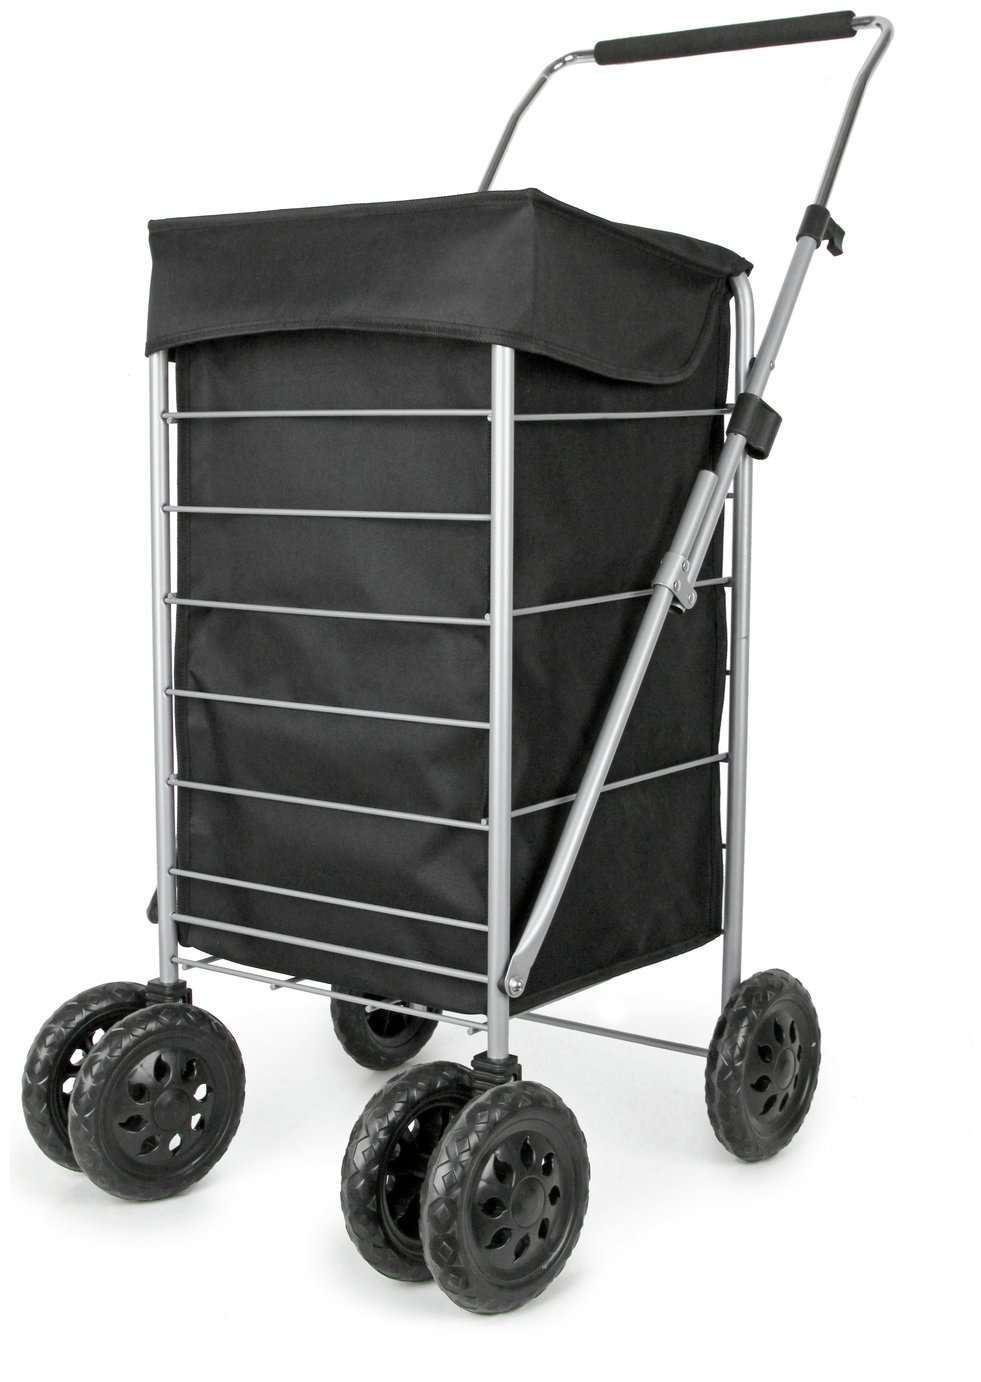 Image of 6 Wheel Deluxe Shopping Trolley